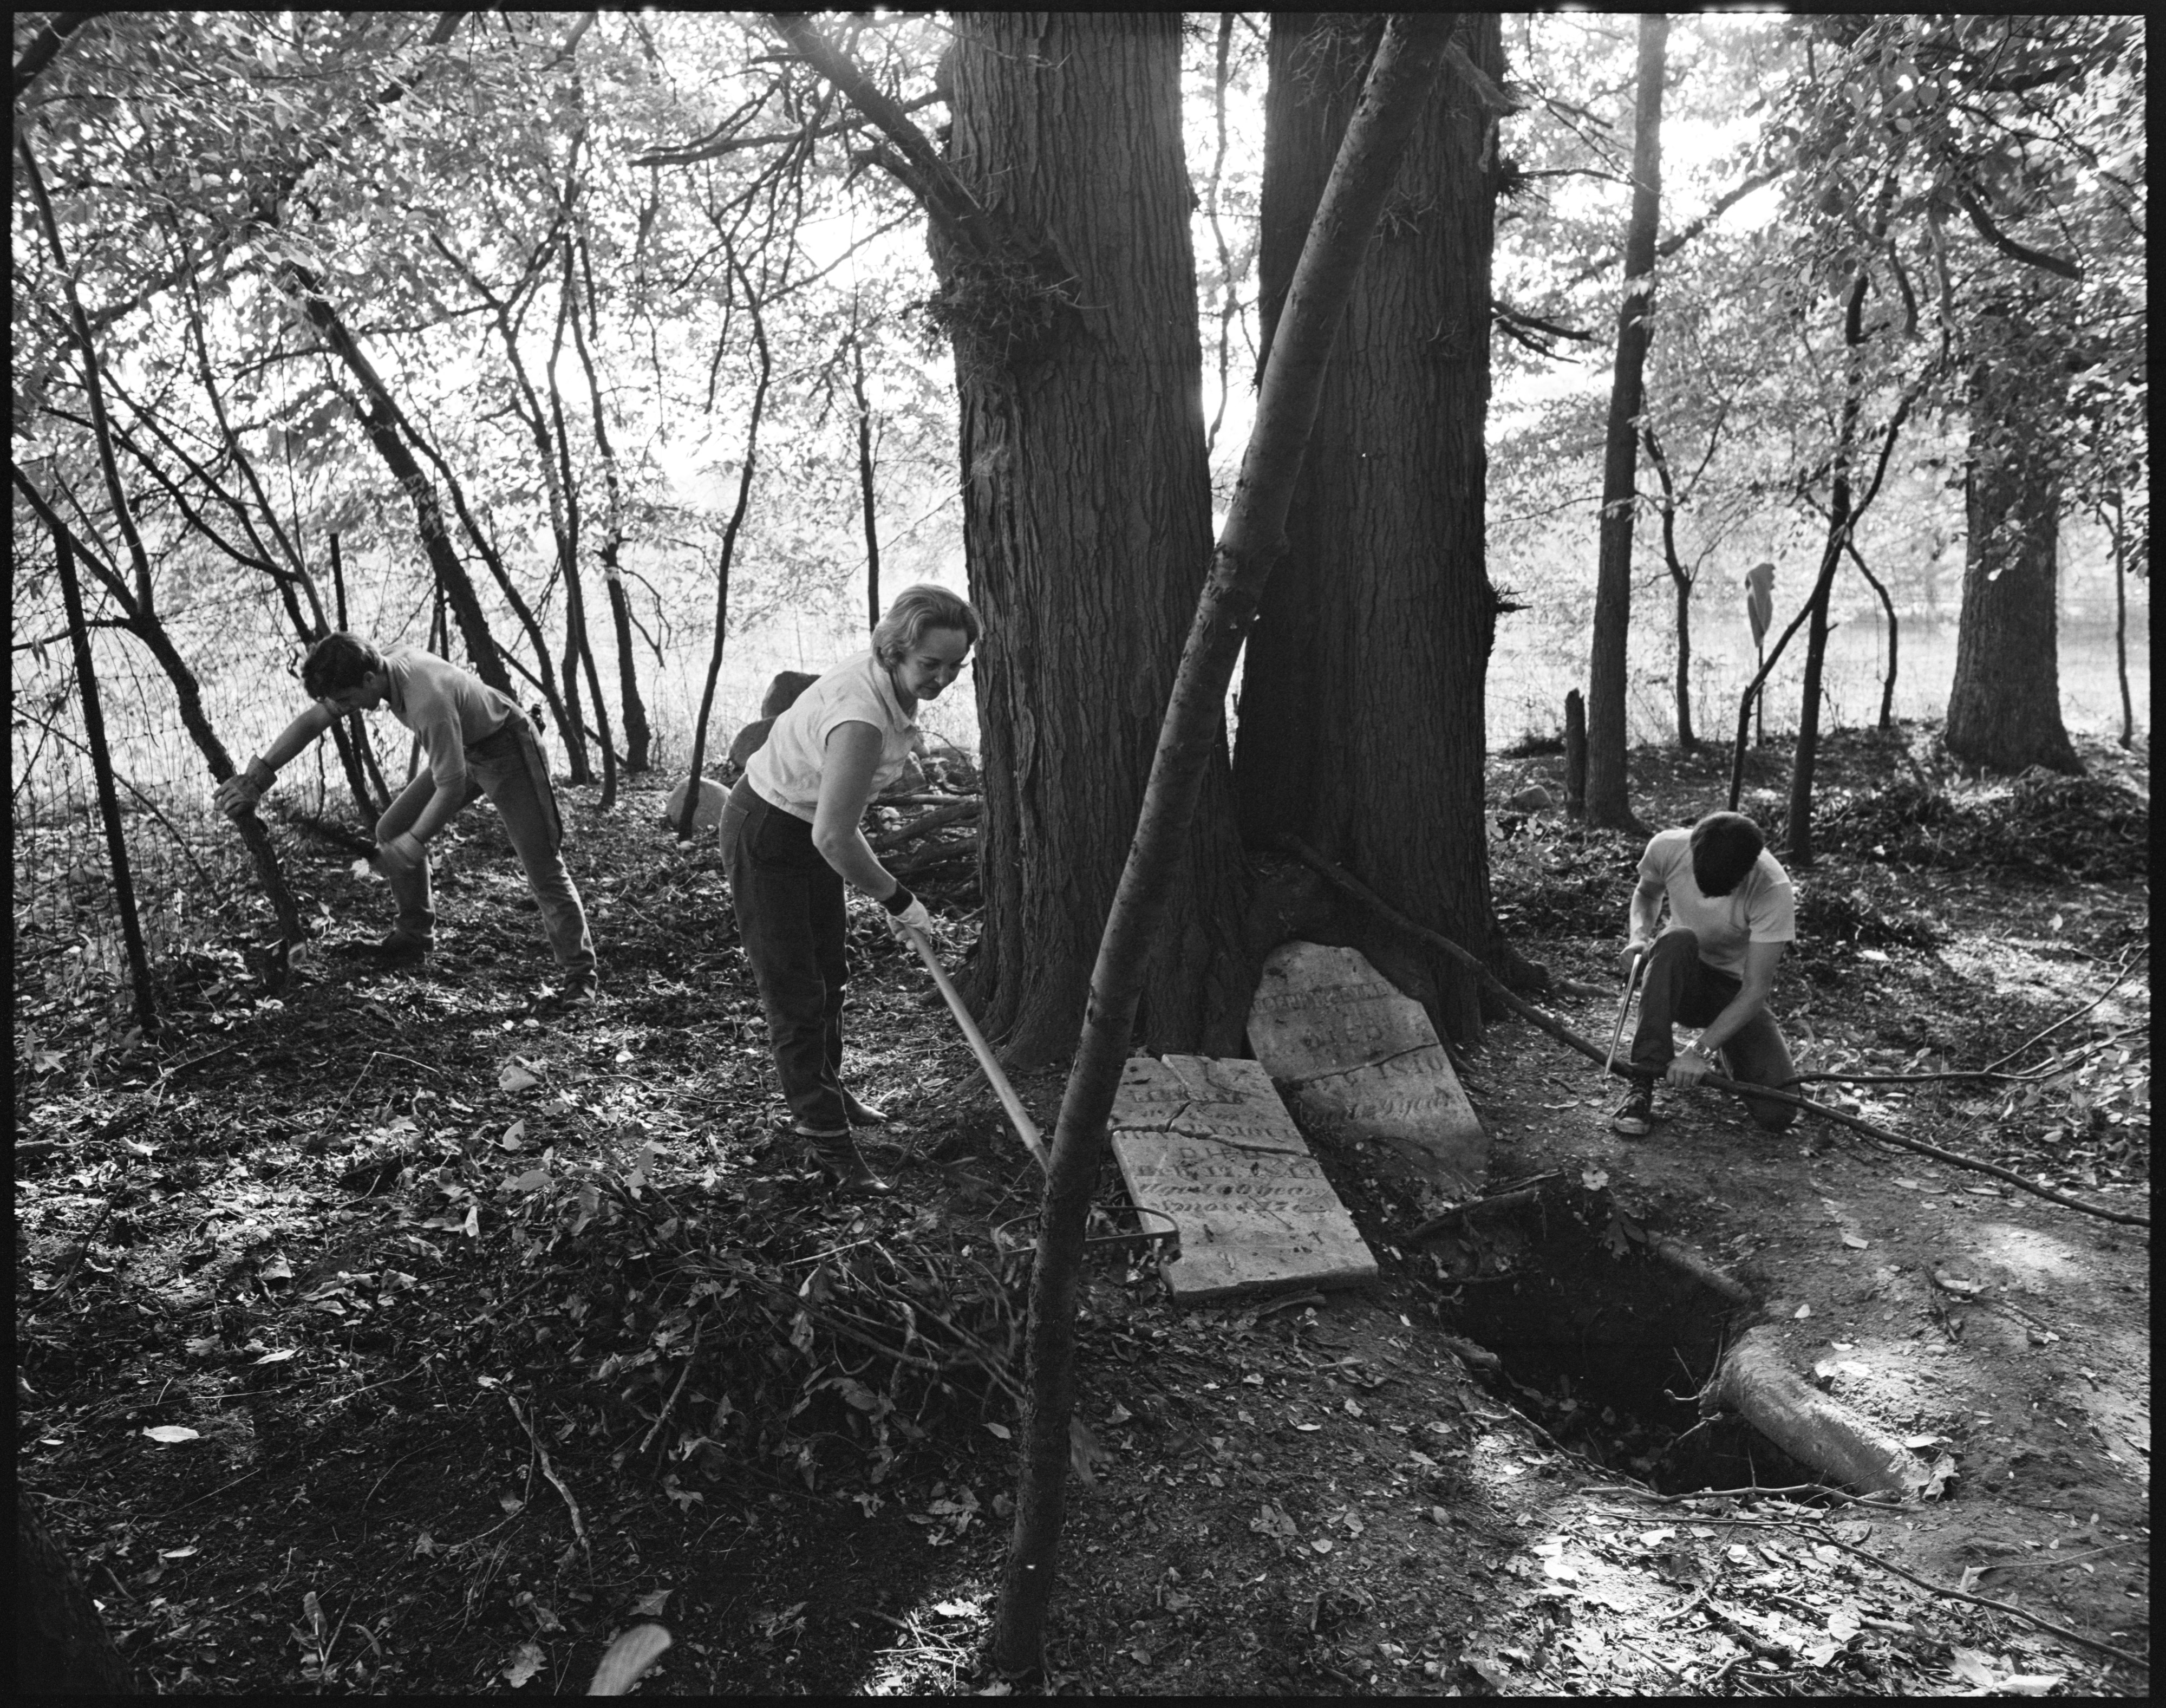 Members Of The Dexter Area Historical Society Work To Restore Scio Cemetery, October 1971 image